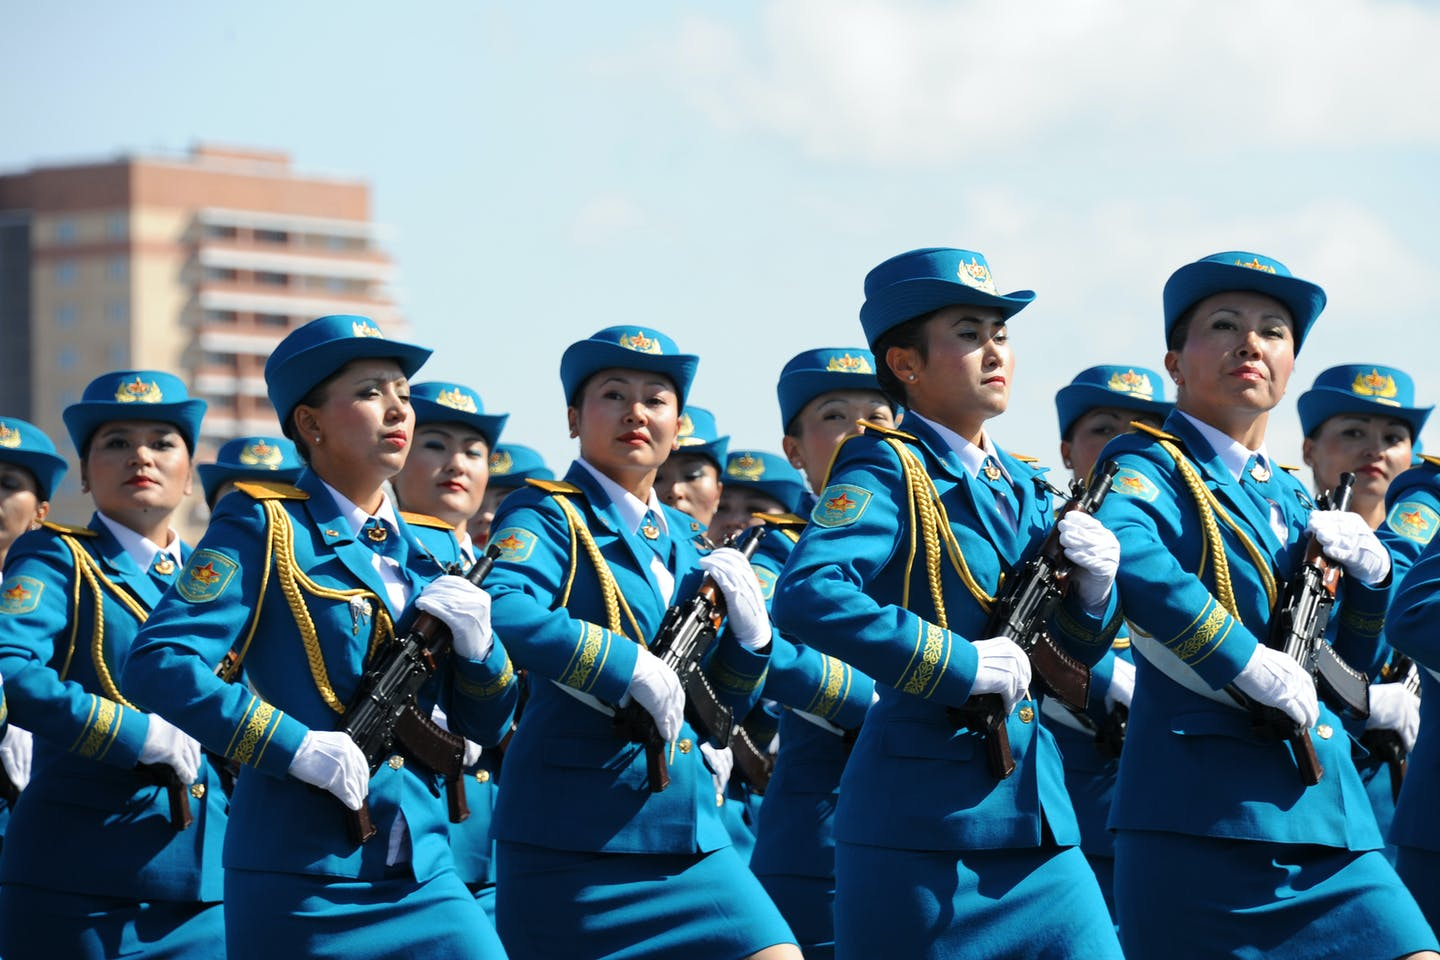 Military parade during Constitution Day in Kazakhstan.